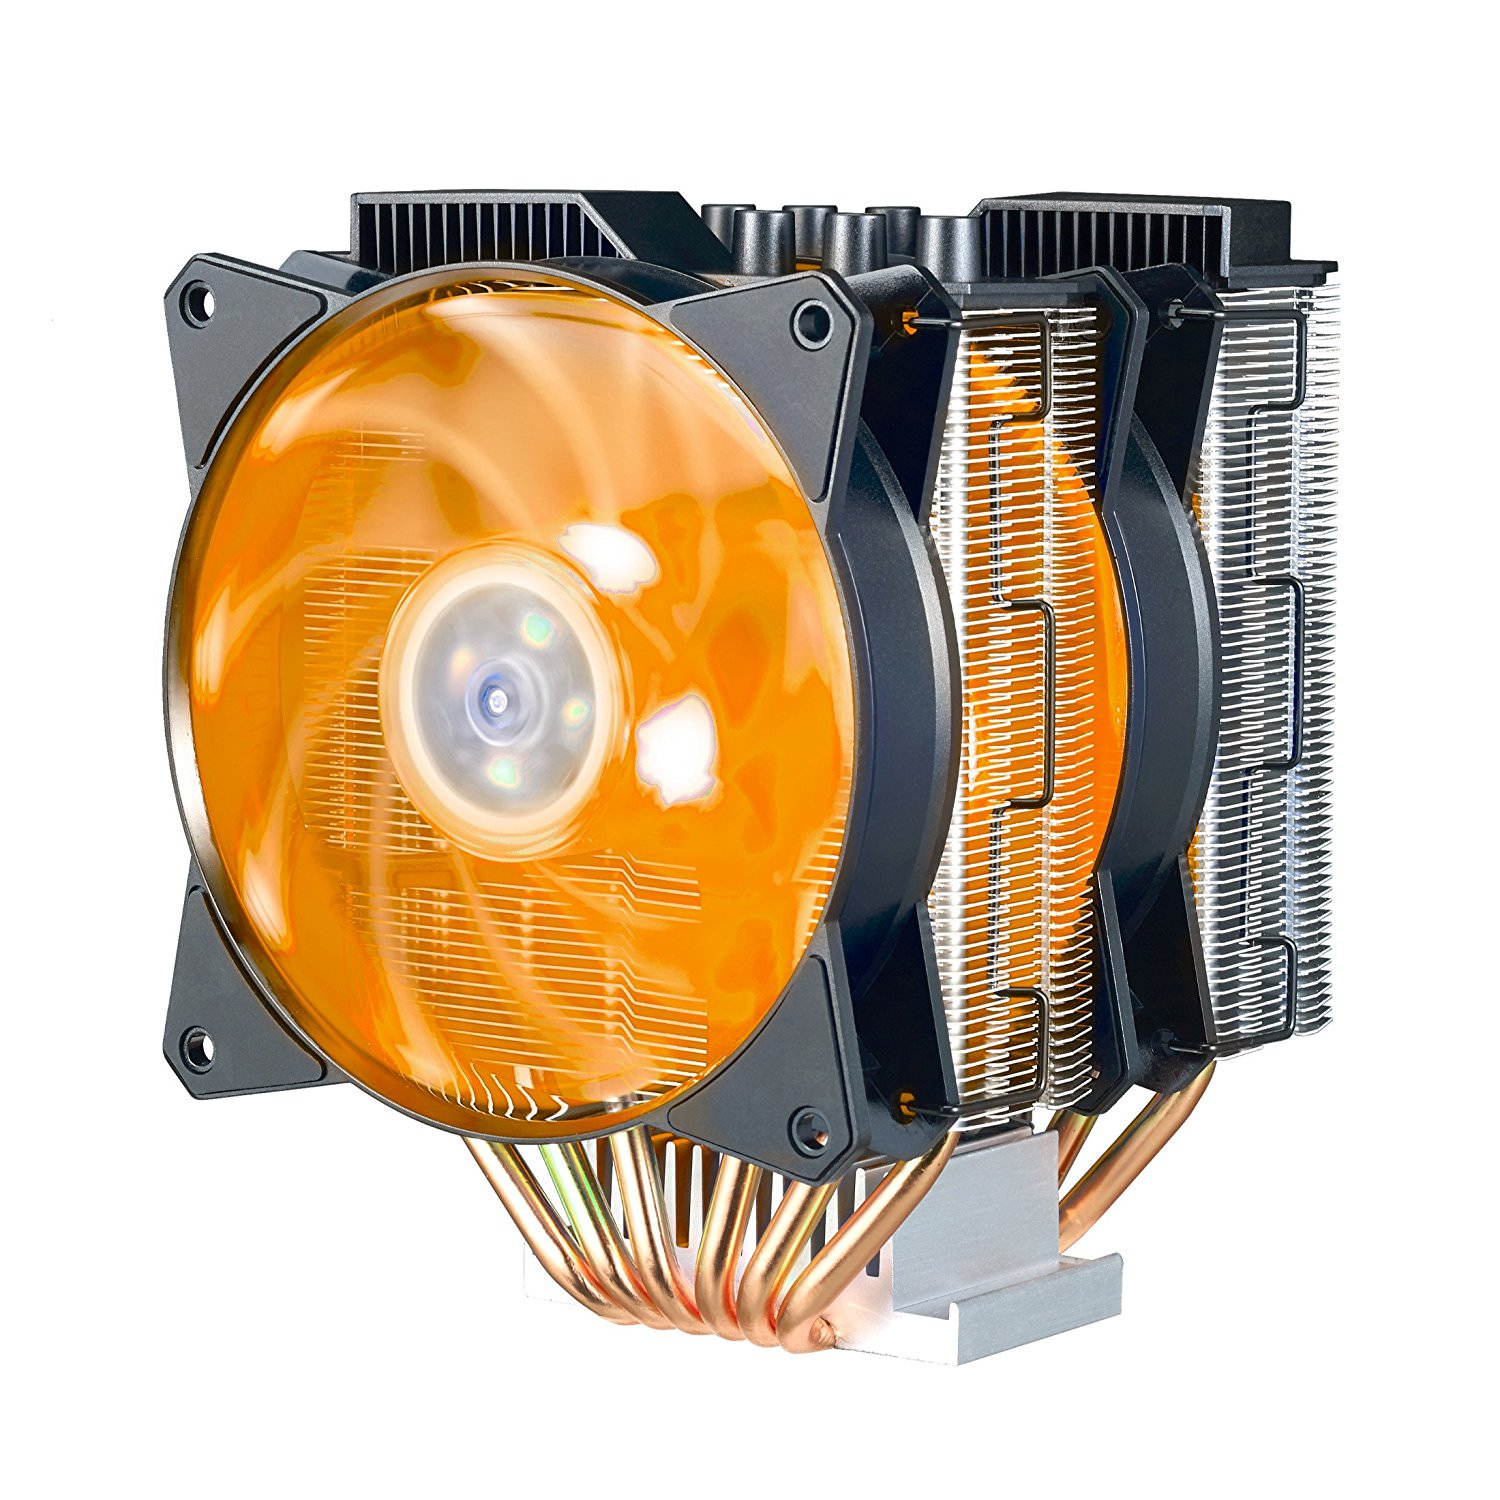 Cooler Master MasterAir MA621P (TR4 Specific) Twin-Tower RGB CPU Air Cooler 6 Heatpipes, Dual MasterFan MF120R 120mm RGB Fans (MAP-D6PN-218PC-R2)